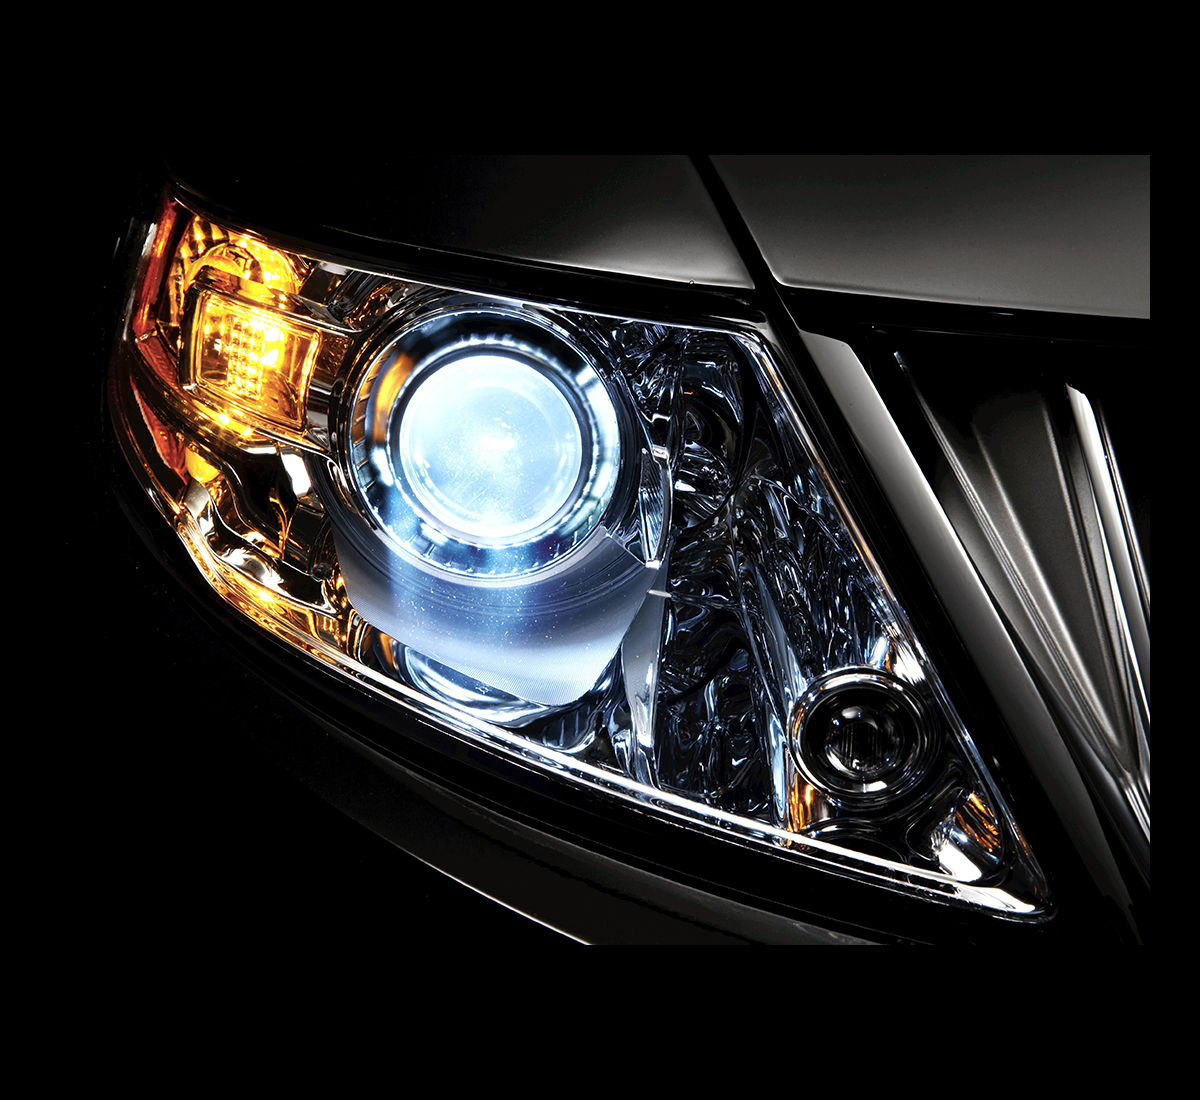 autoweb2015-january-technology-headlights-007